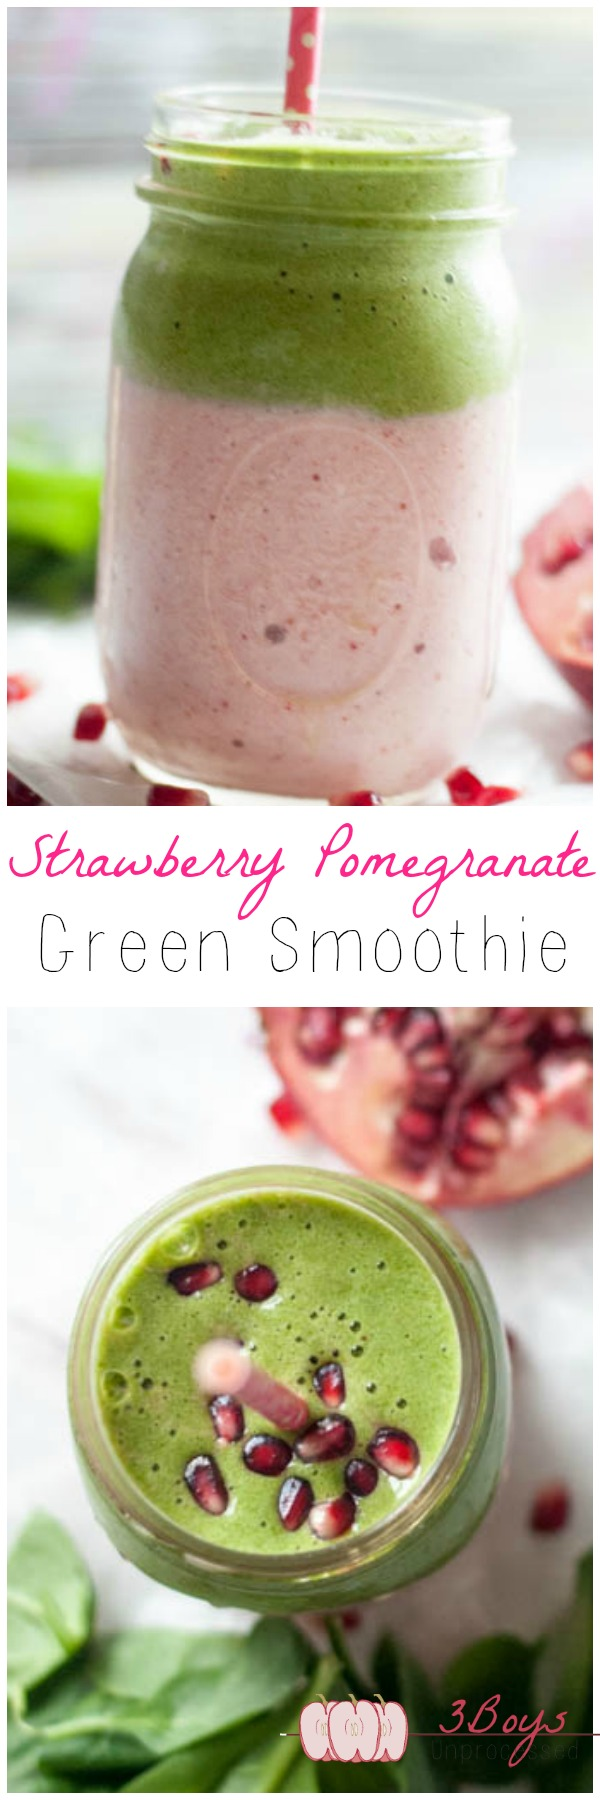 strawberrypomegranatesmoothie